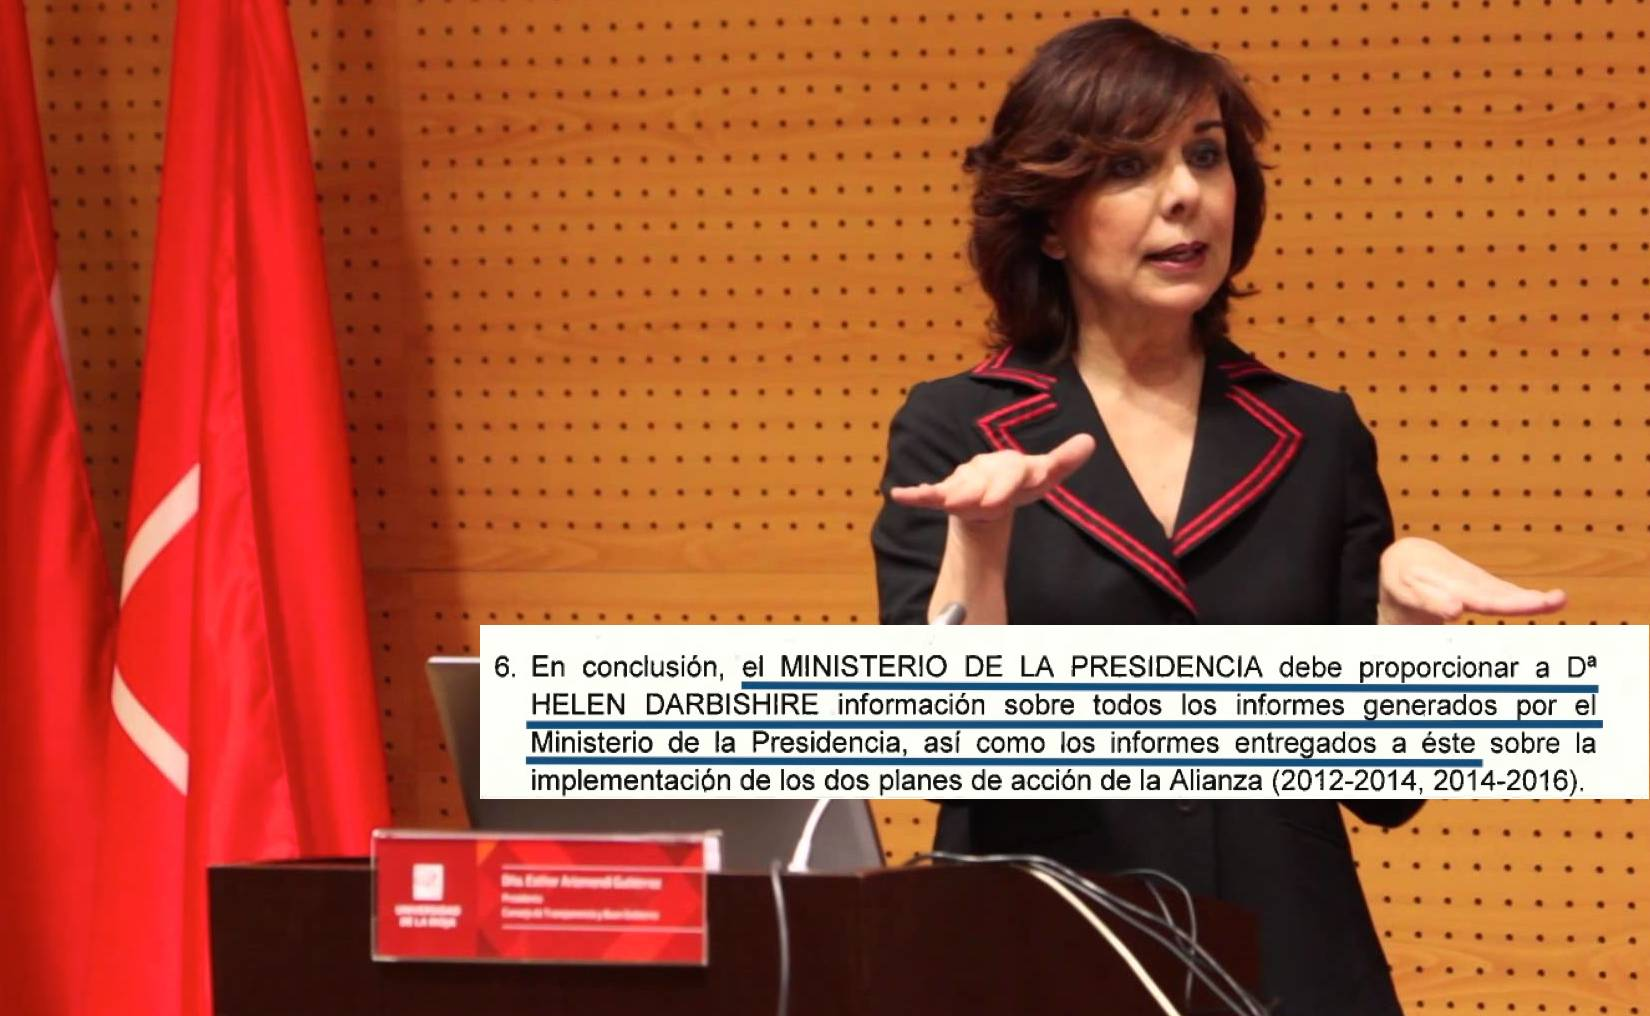 """Documents used in decision making are not """"internal"""" rules Spain's Transparency Council"""